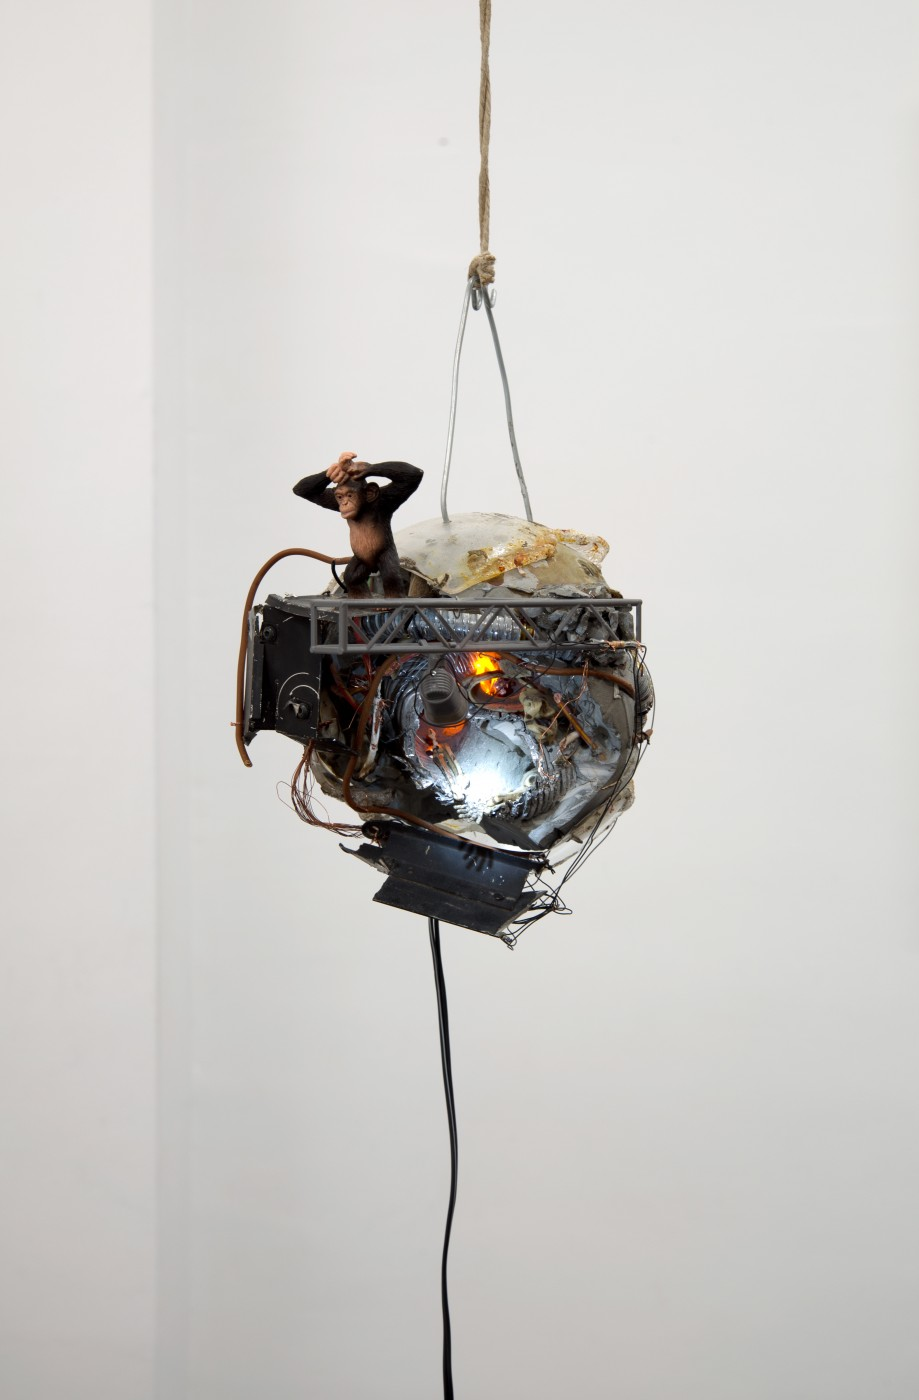 APPLE OF EARTH Mathis Altmann,